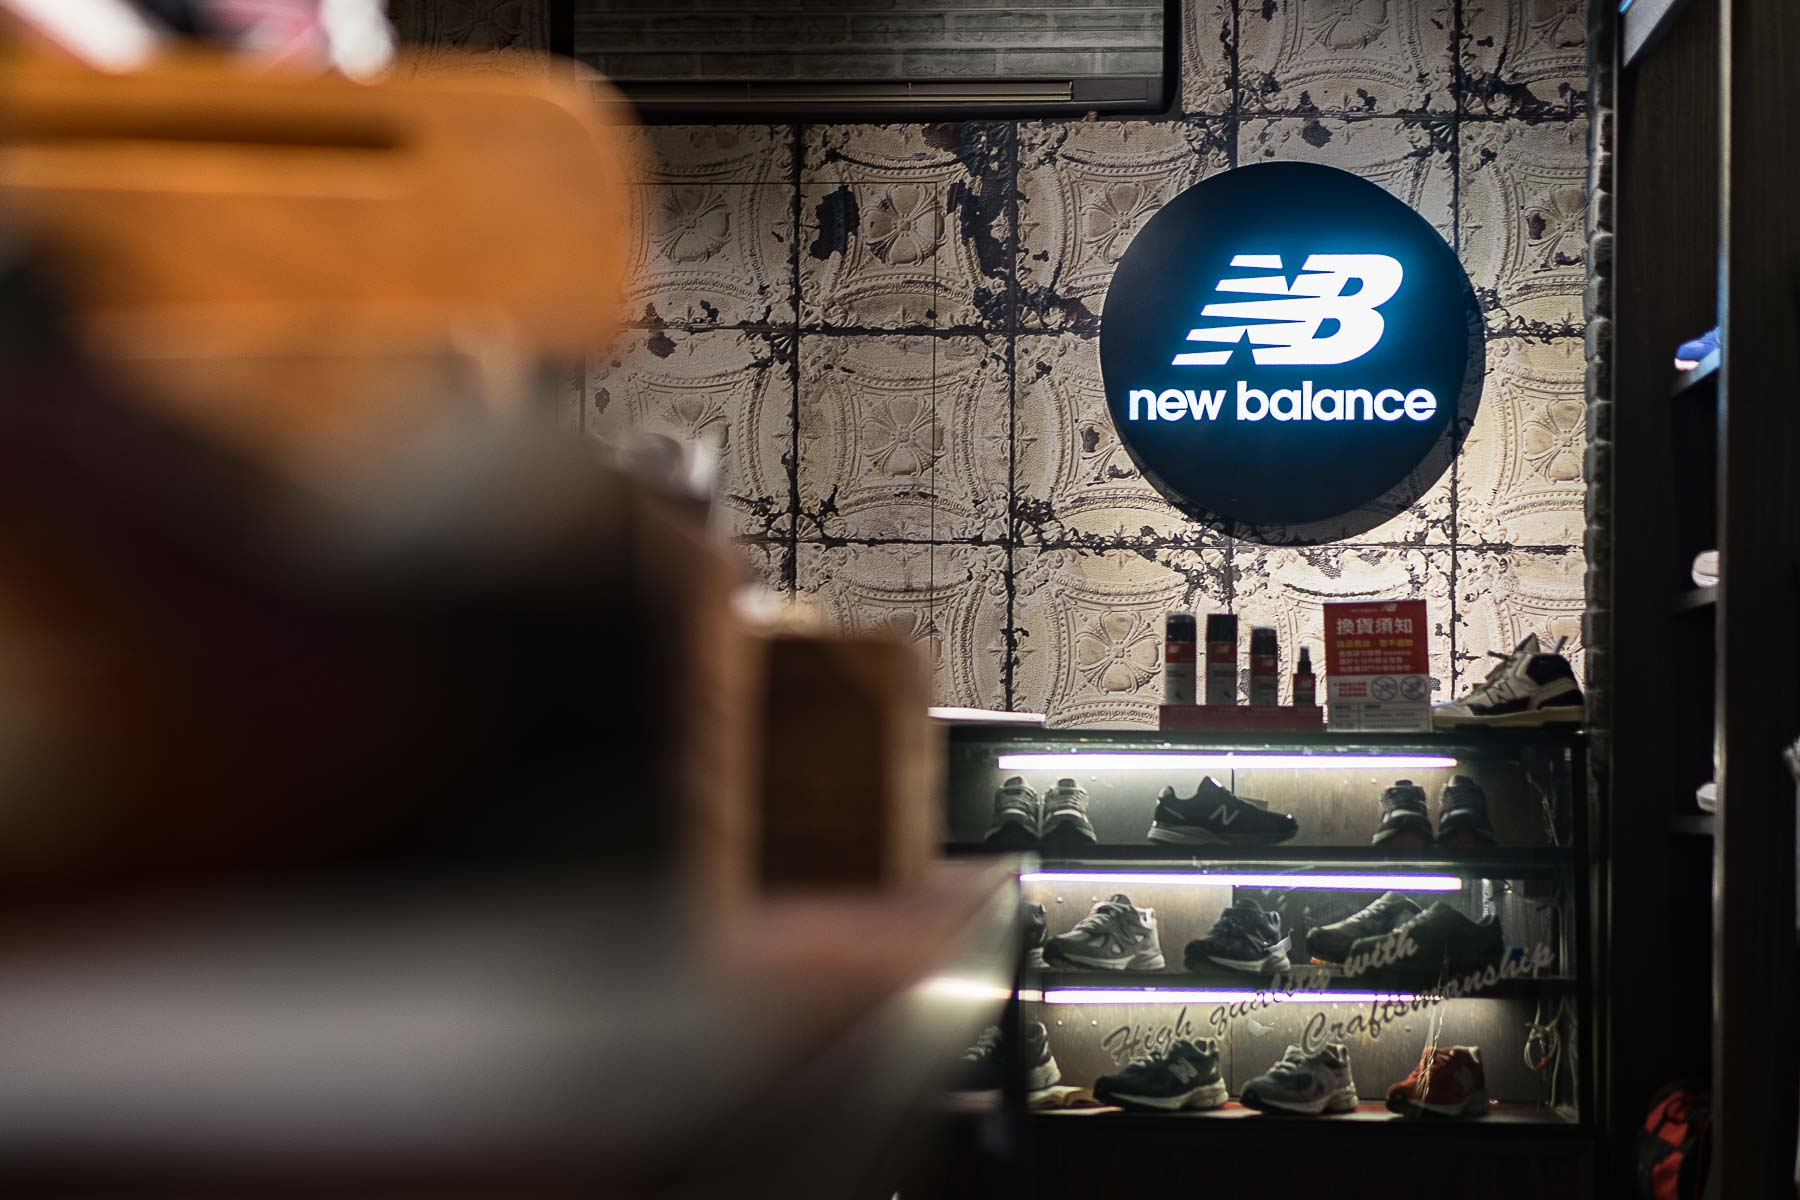 new-balance-nb-187-concept-store-11